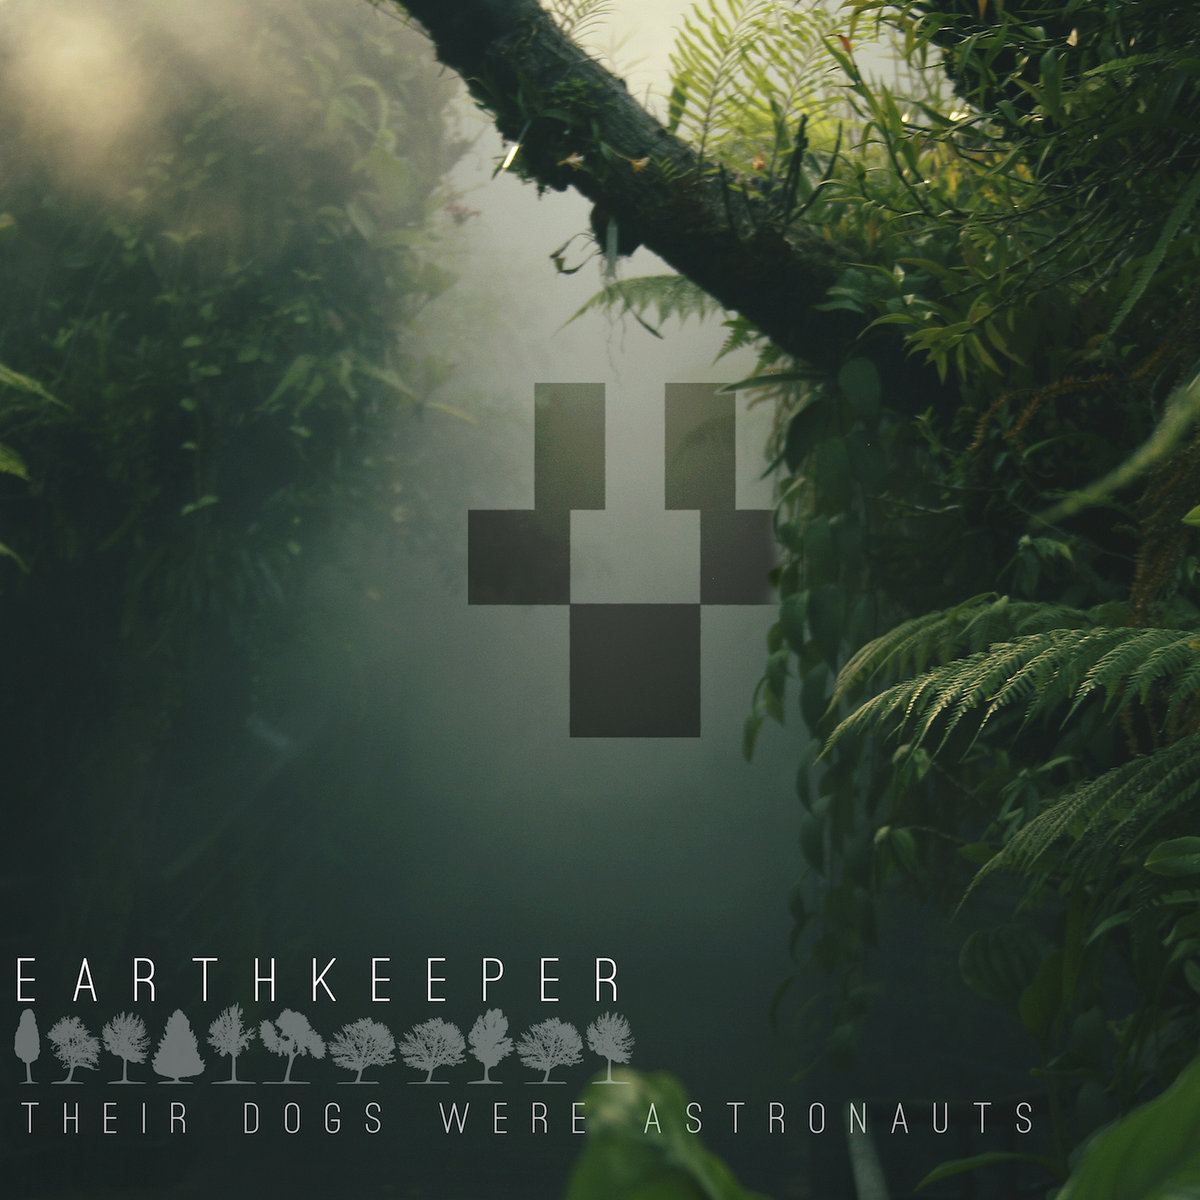 Their Dogs Were Astronauts - Earthkeeper